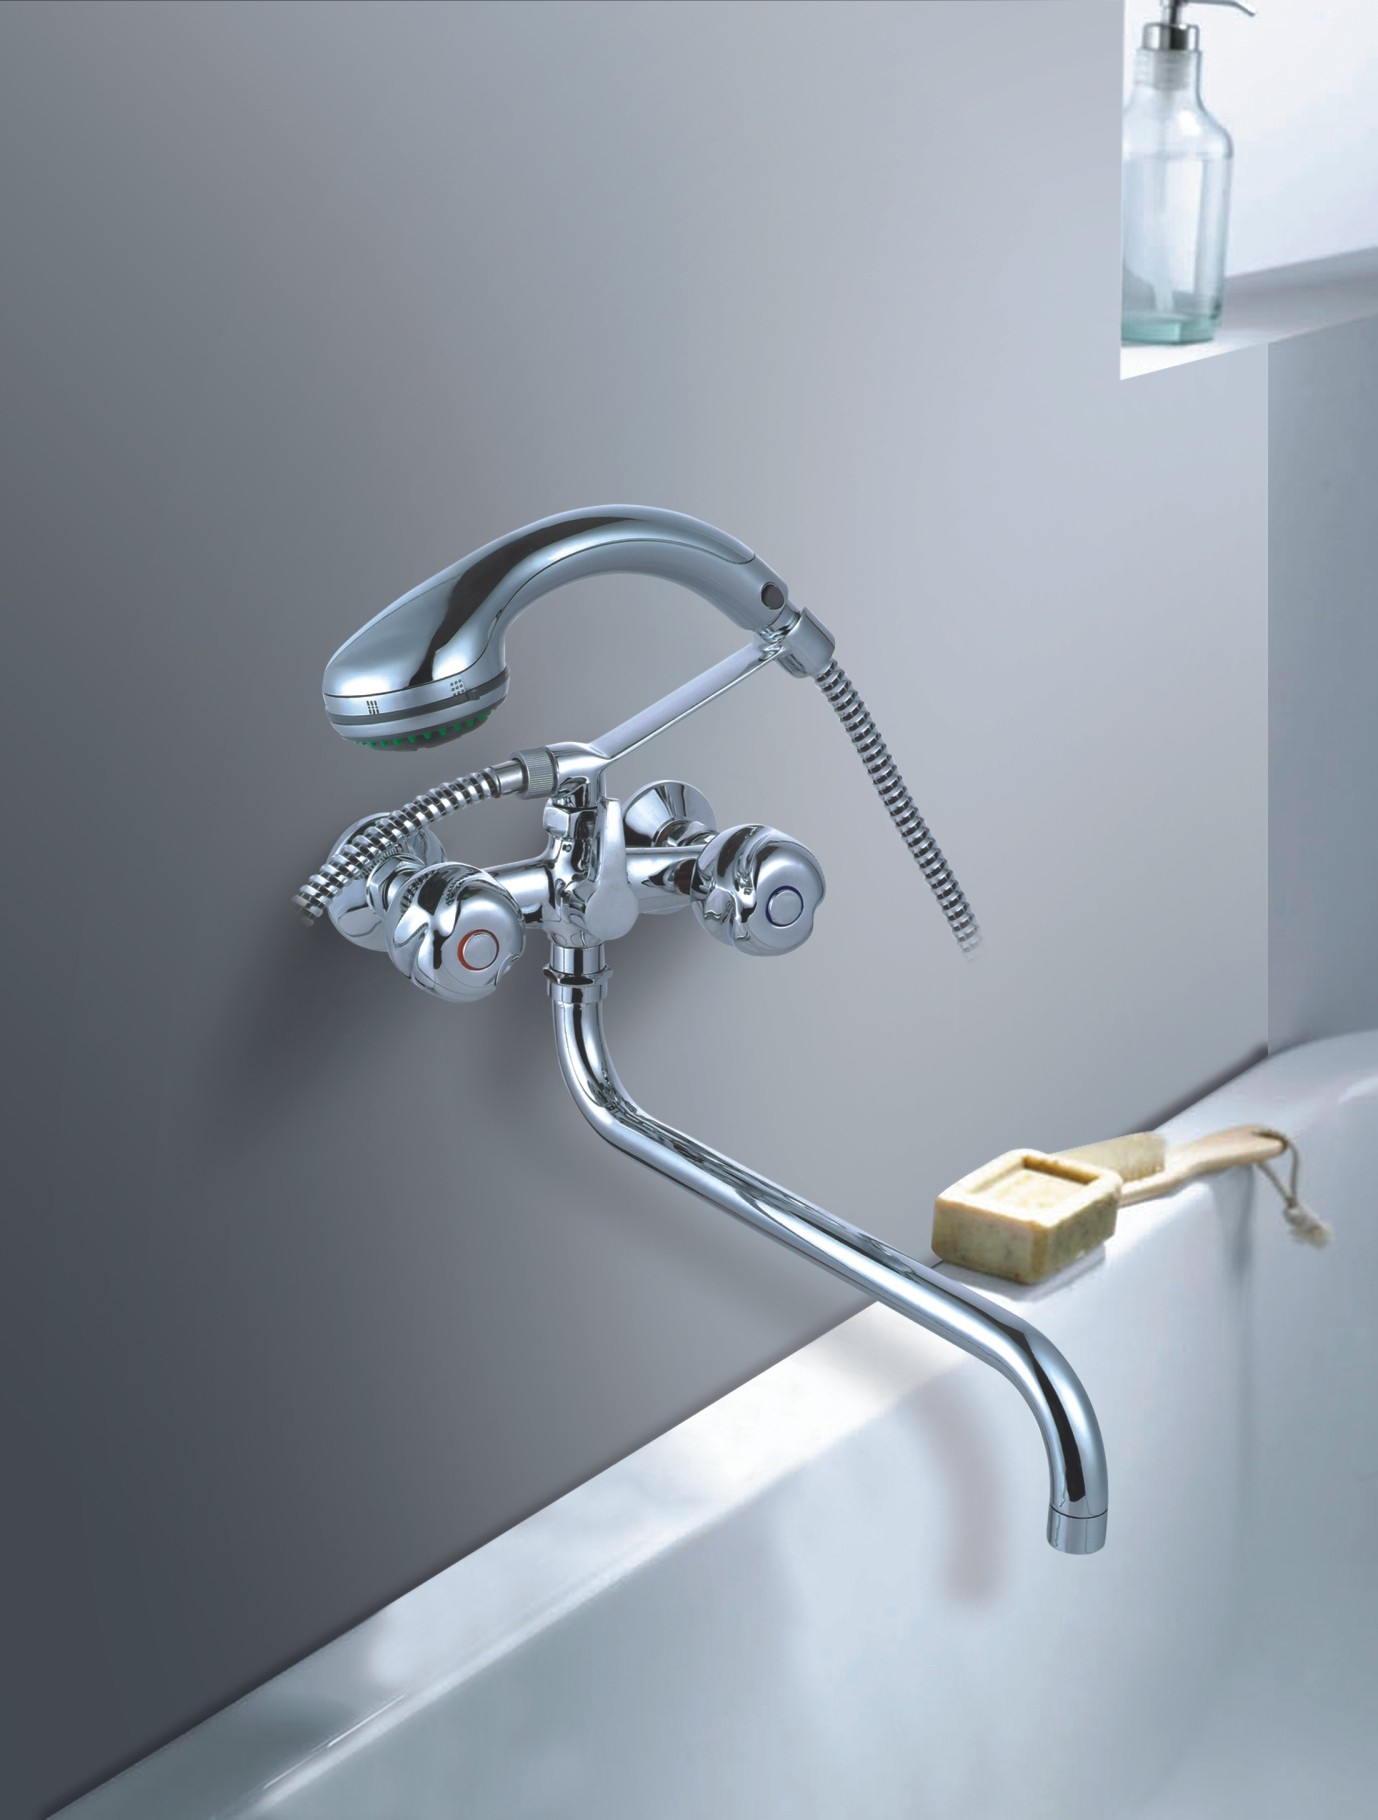 Ideas, shower adapter for tub showers decoration with regard to dimensions 1378 x 1820  .